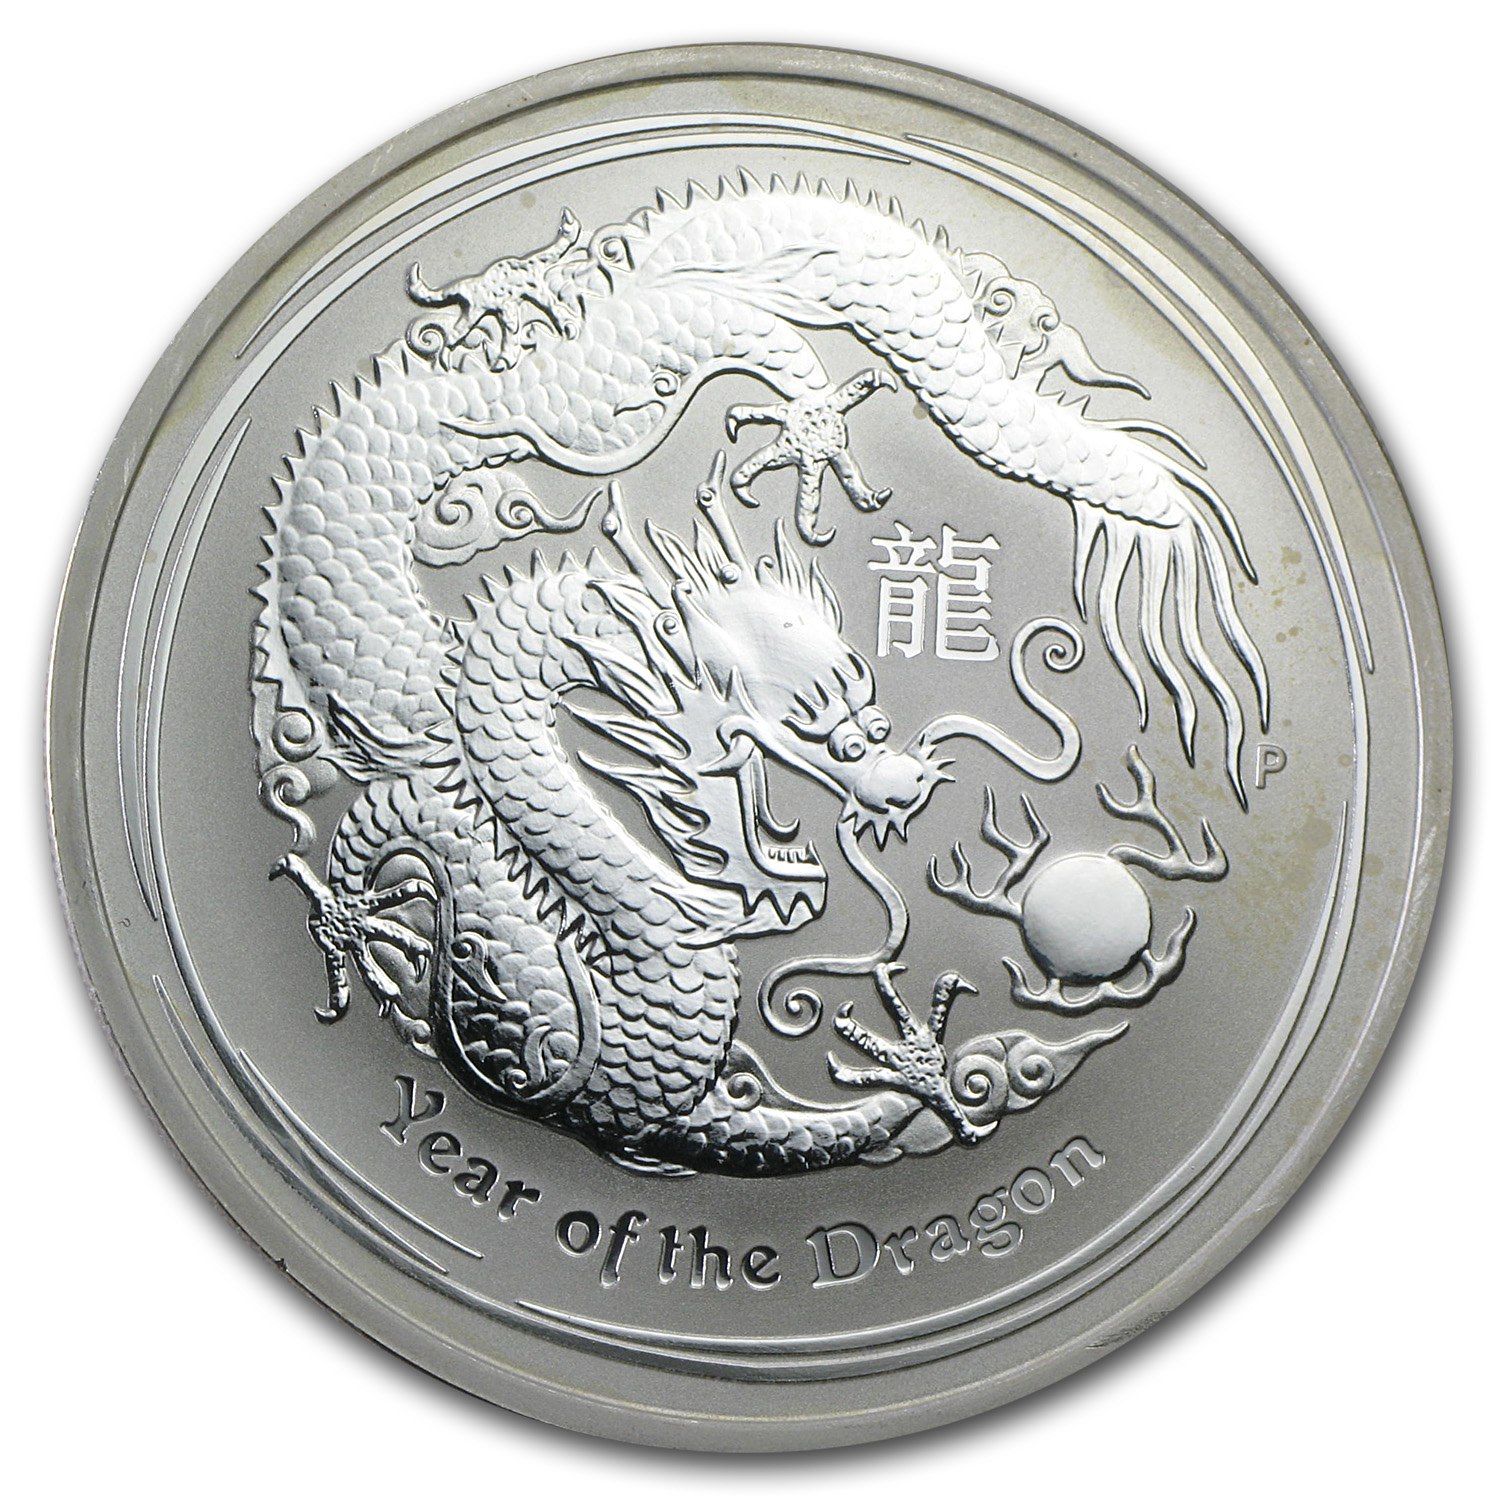 2012 1 oz Silver Lunar Year of the Dragon Coin (Spots)